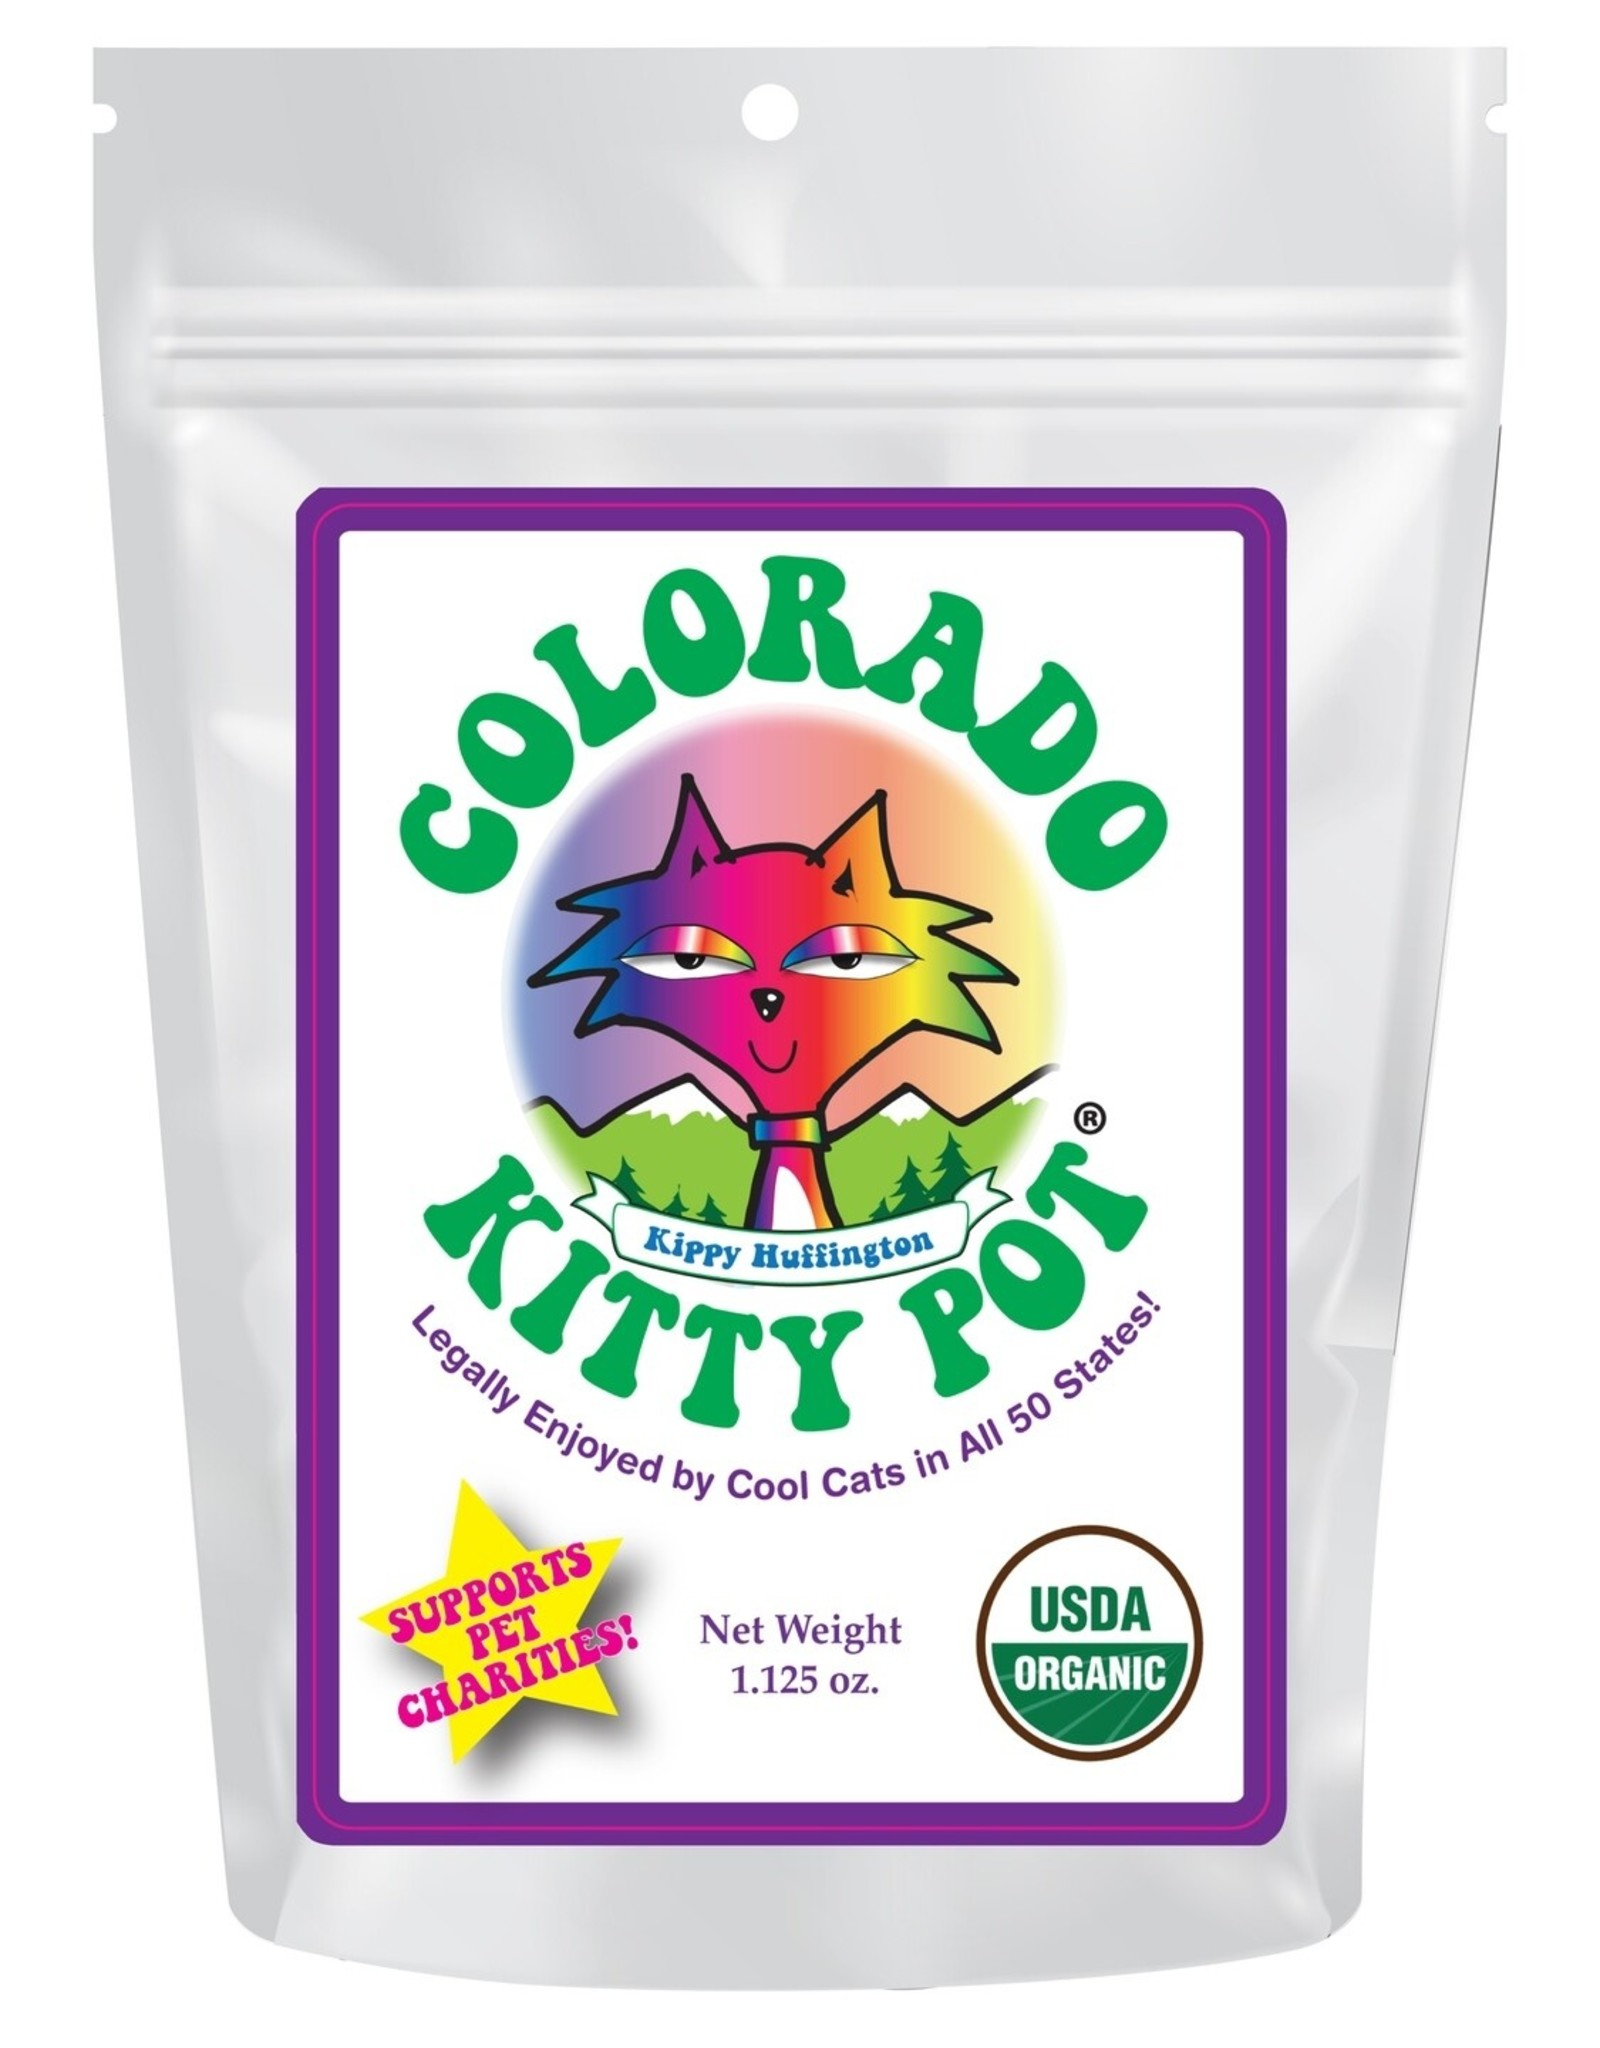 Colorado Kitty Pot Colorado Kitty Pot Catnip